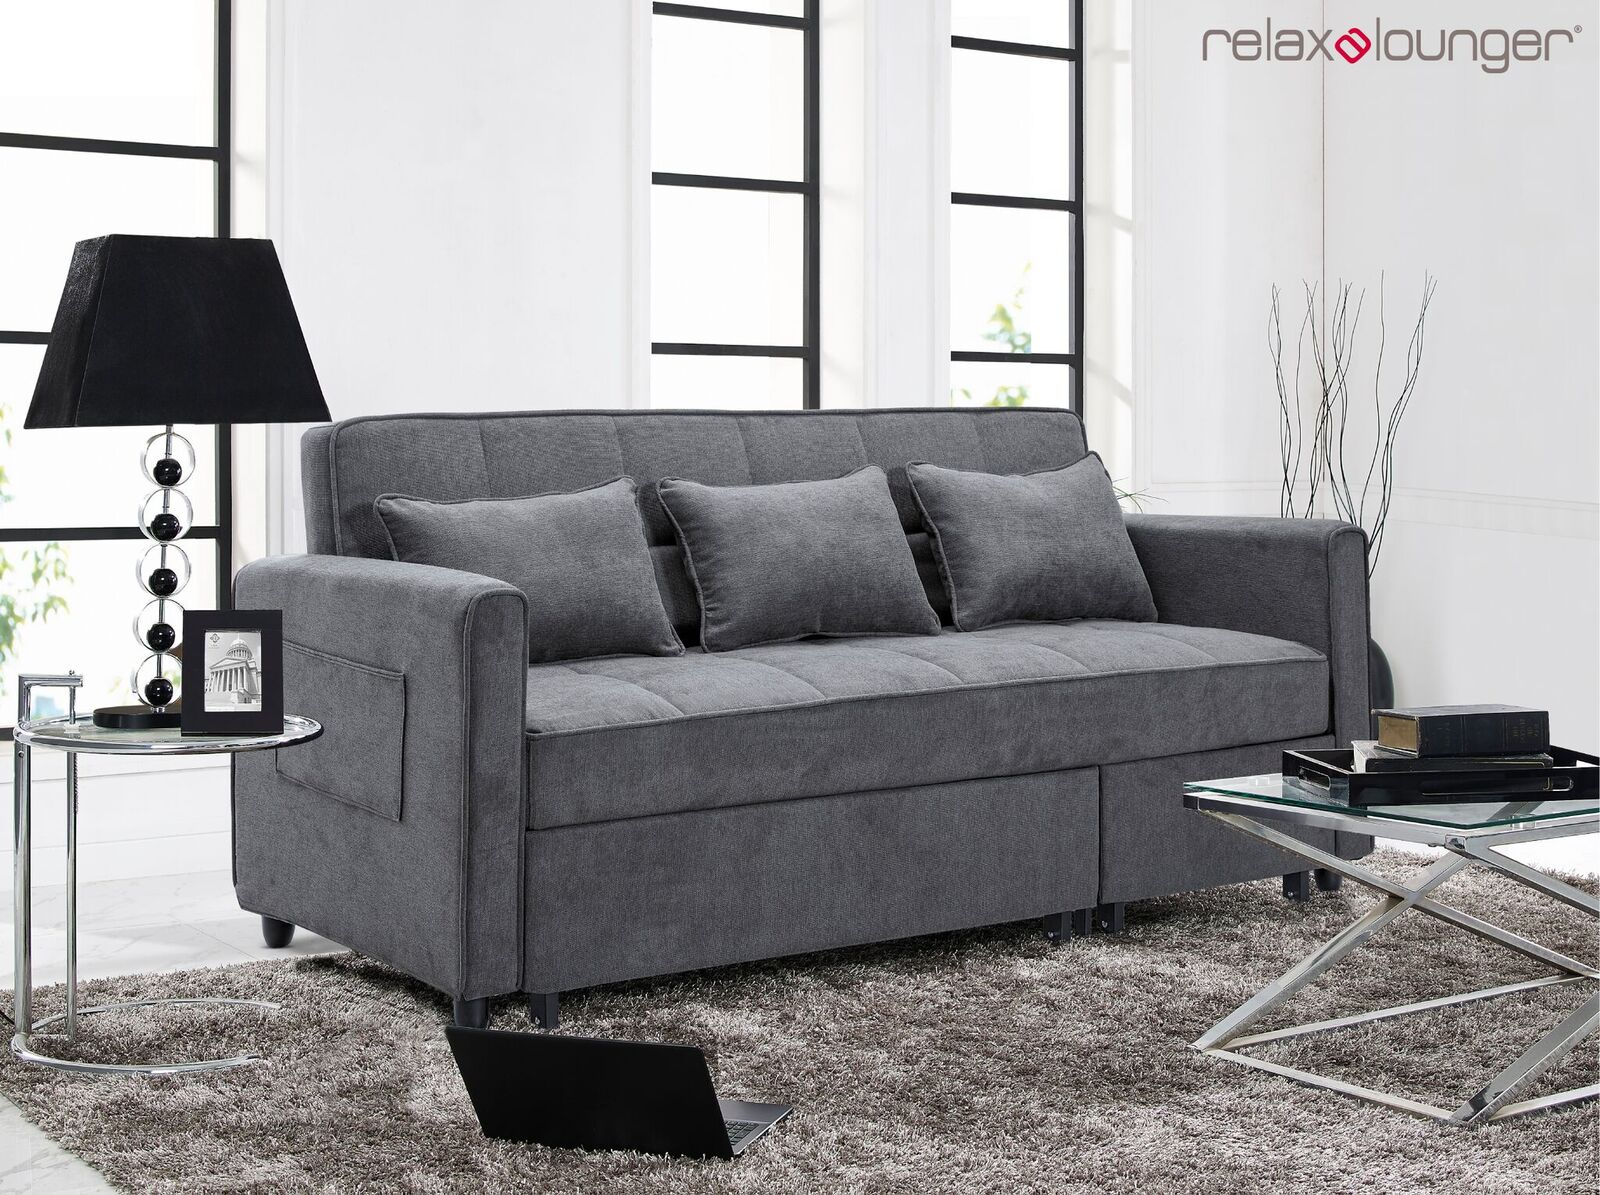 Pleasant Skylar Dream Lift Convertible Action Futons Gmtry Best Dining Table And Chair Ideas Images Gmtryco